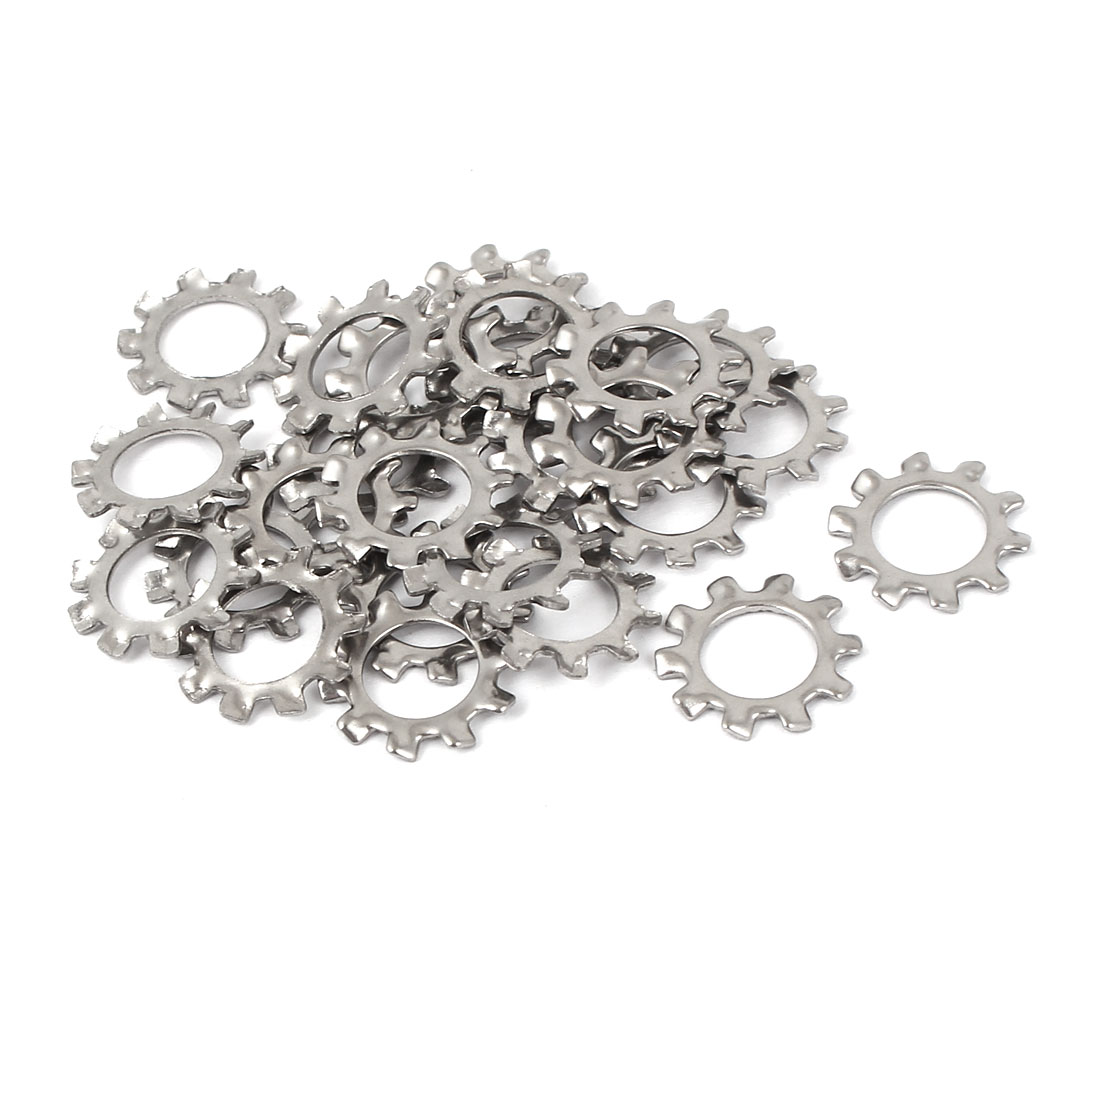 M8 304 Stainless Steel External Star Lock Washers 25 Pcs